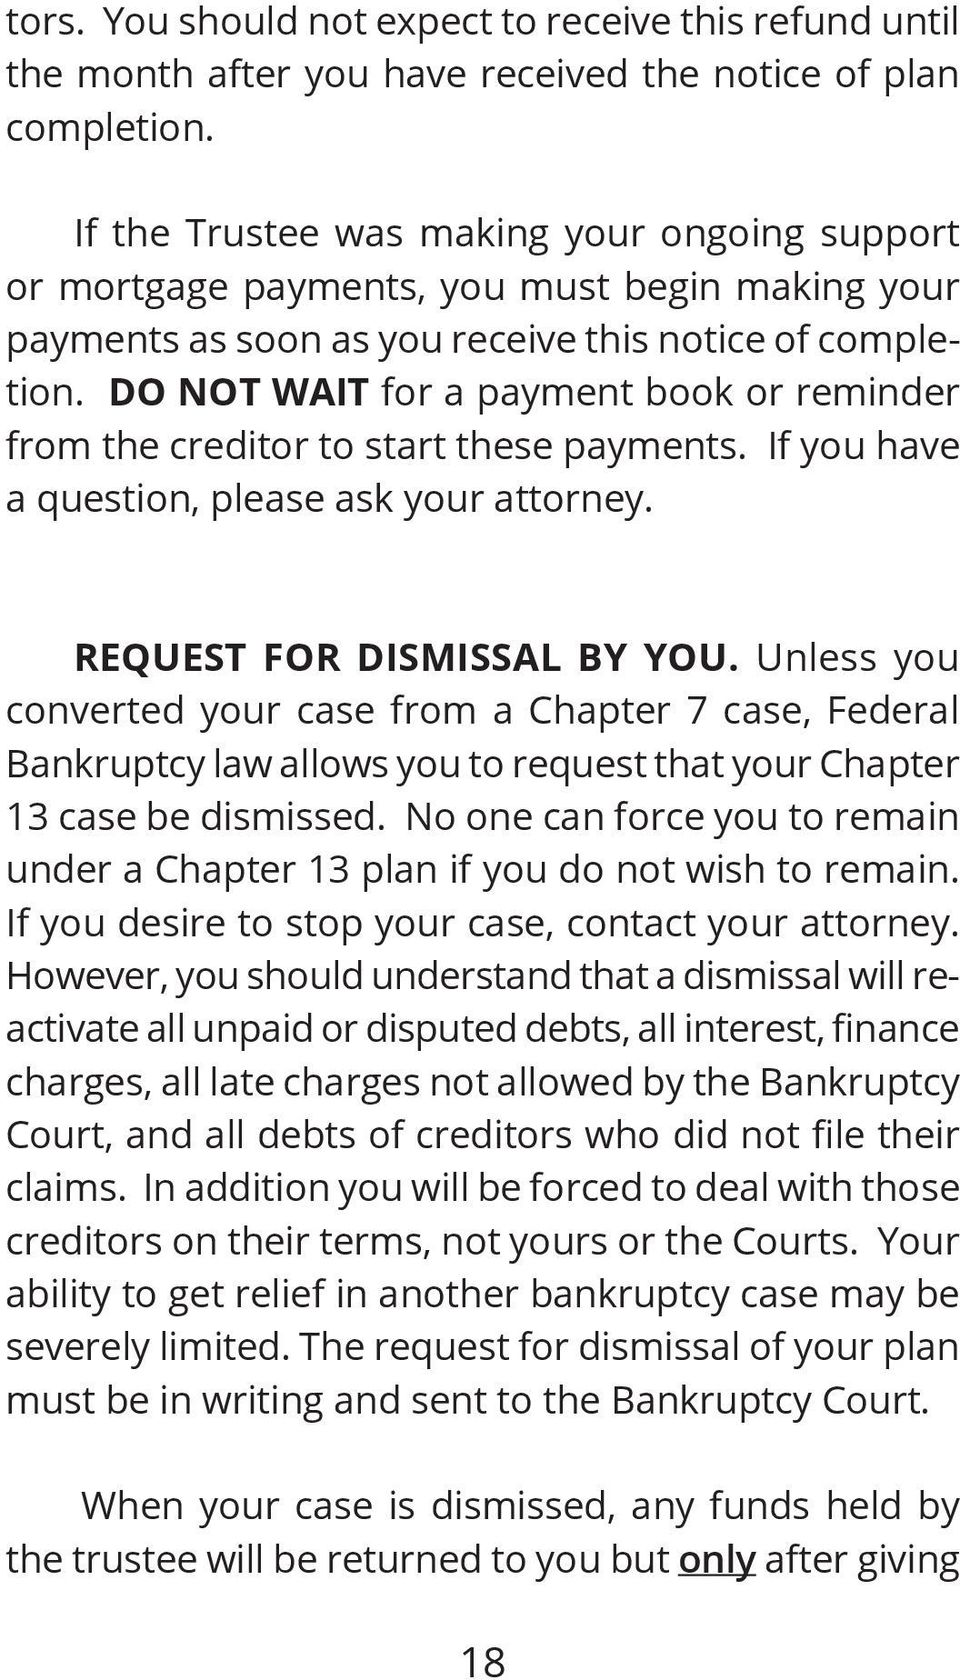 DO NOT WAIT for a payment book or reminder from the creditor to start these payments. If you have a question, please ask your attorney. REQUEST FOR DISMISSAL BY YOU.